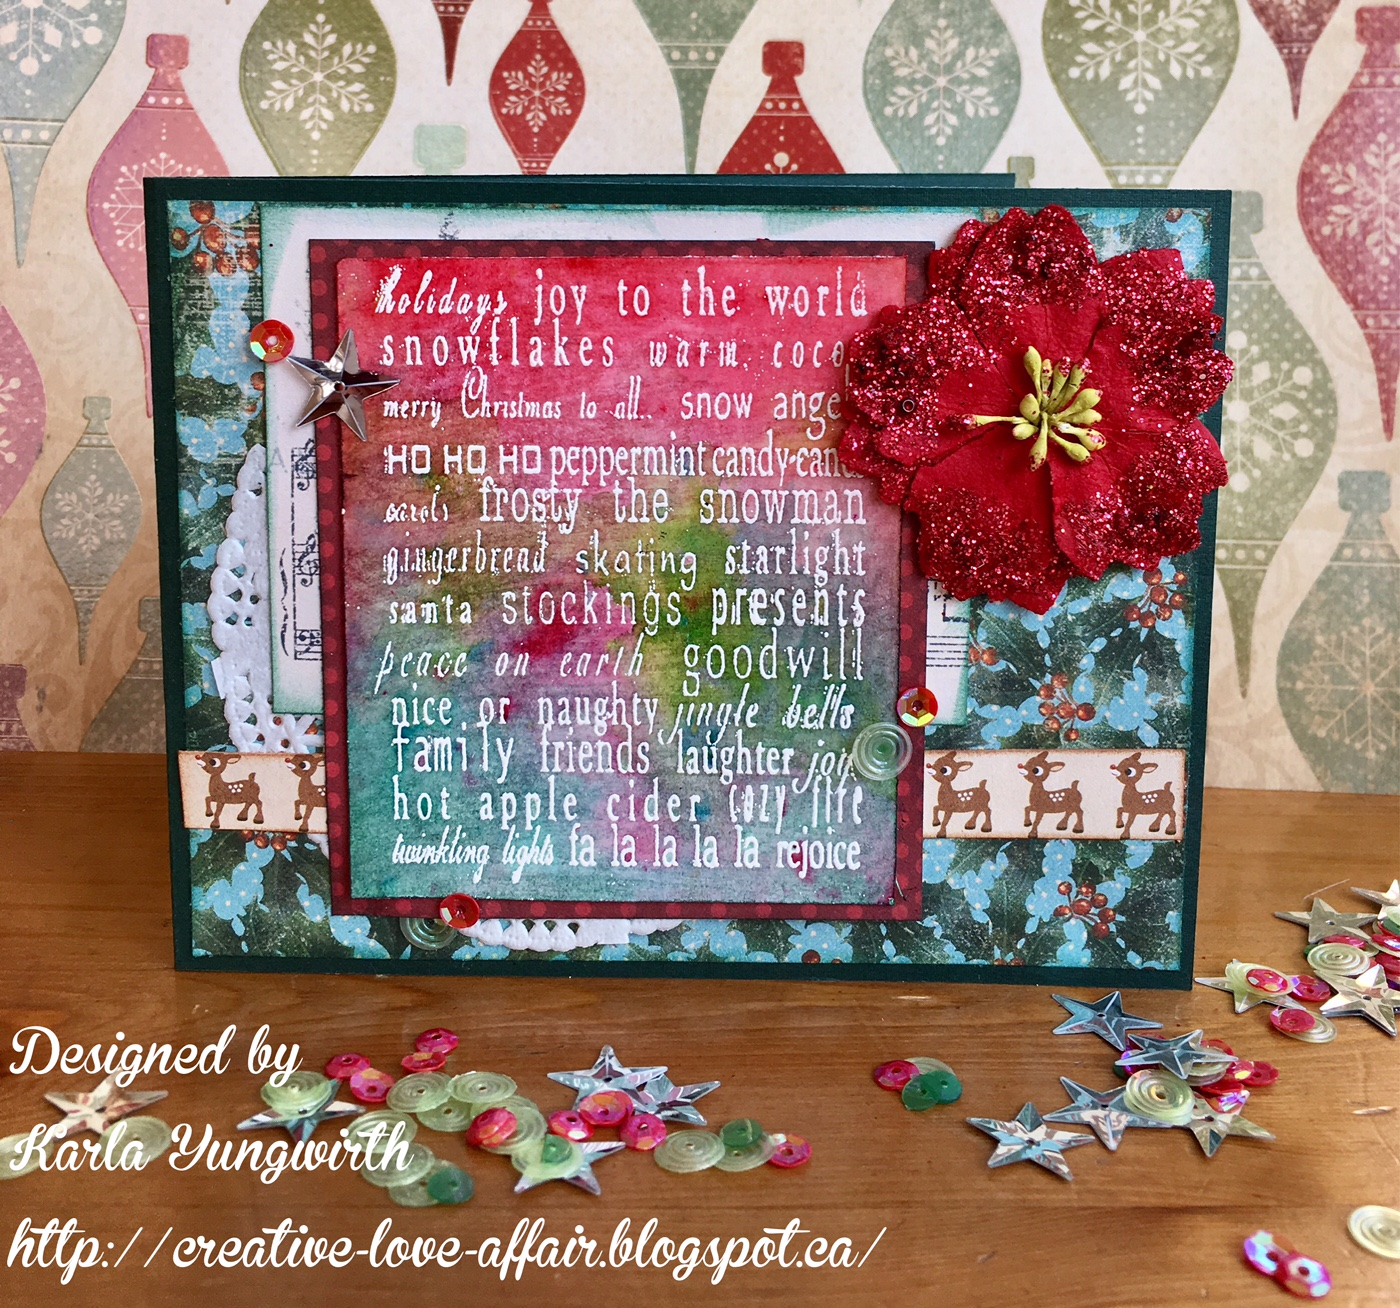 Karla Yungwirth Designs: Color Burst Christmas Cards and Video!